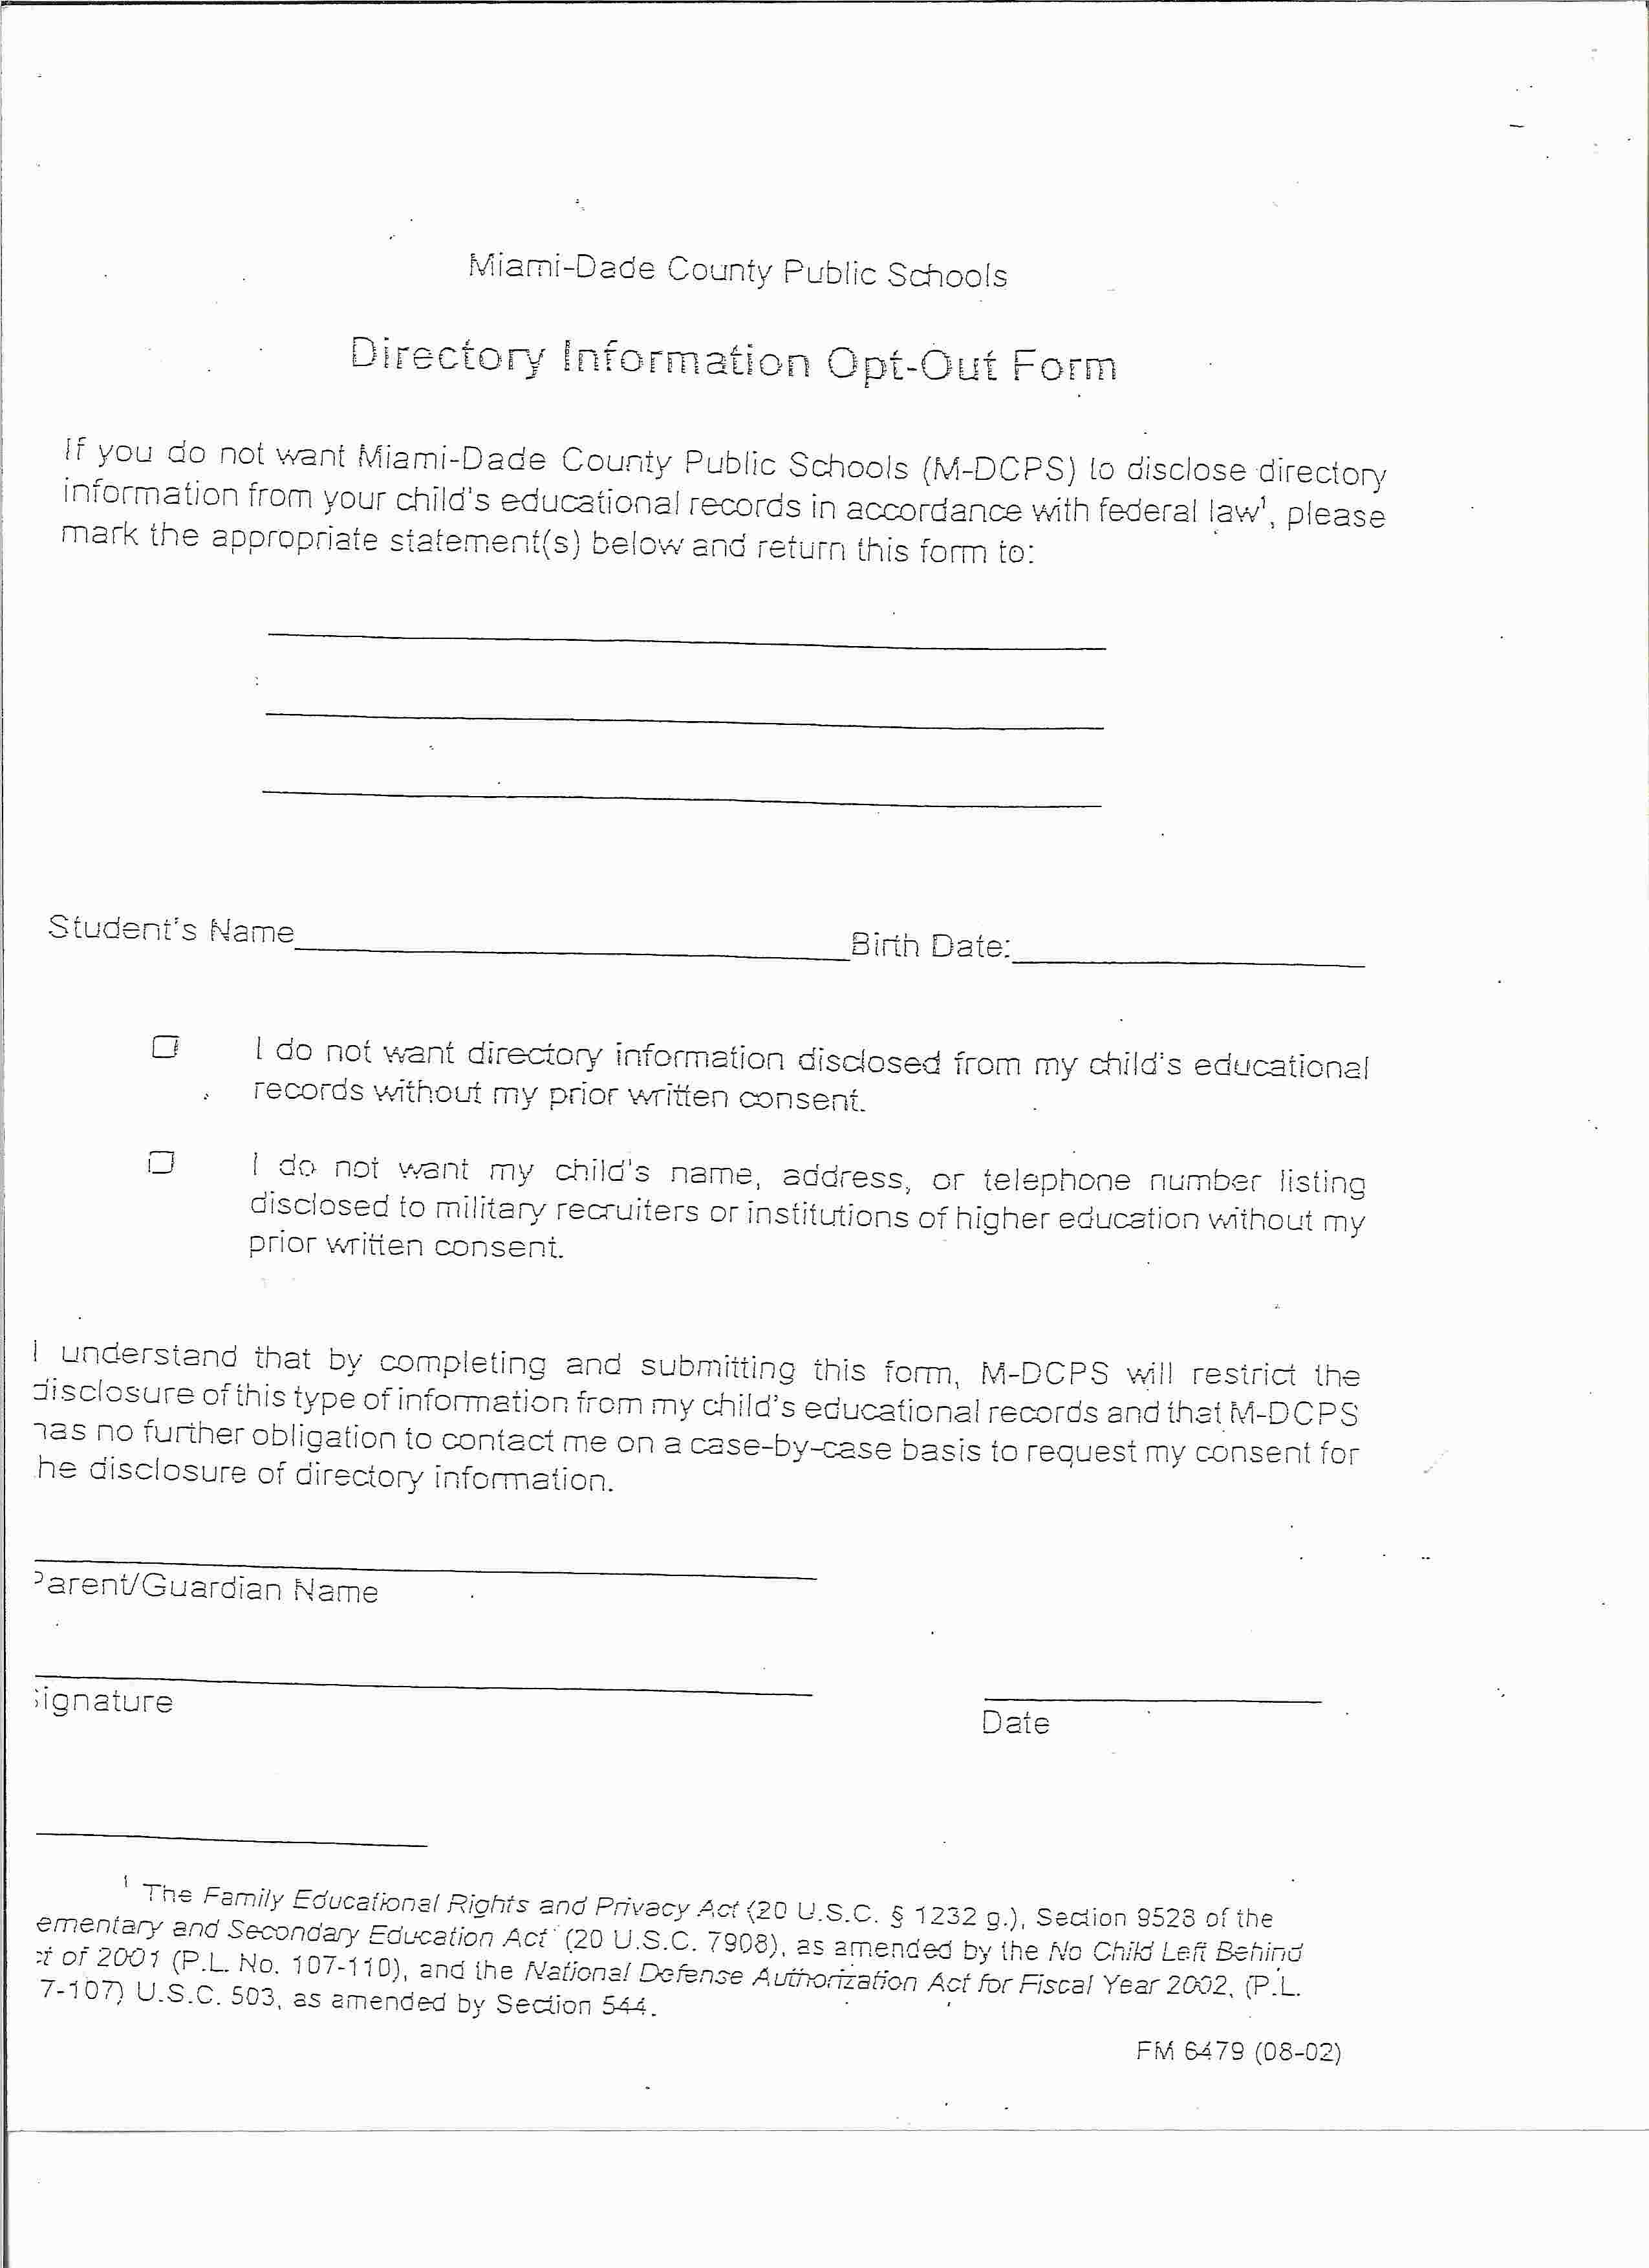 Students new student registration directory information opt out form 1betcityfo Image collections